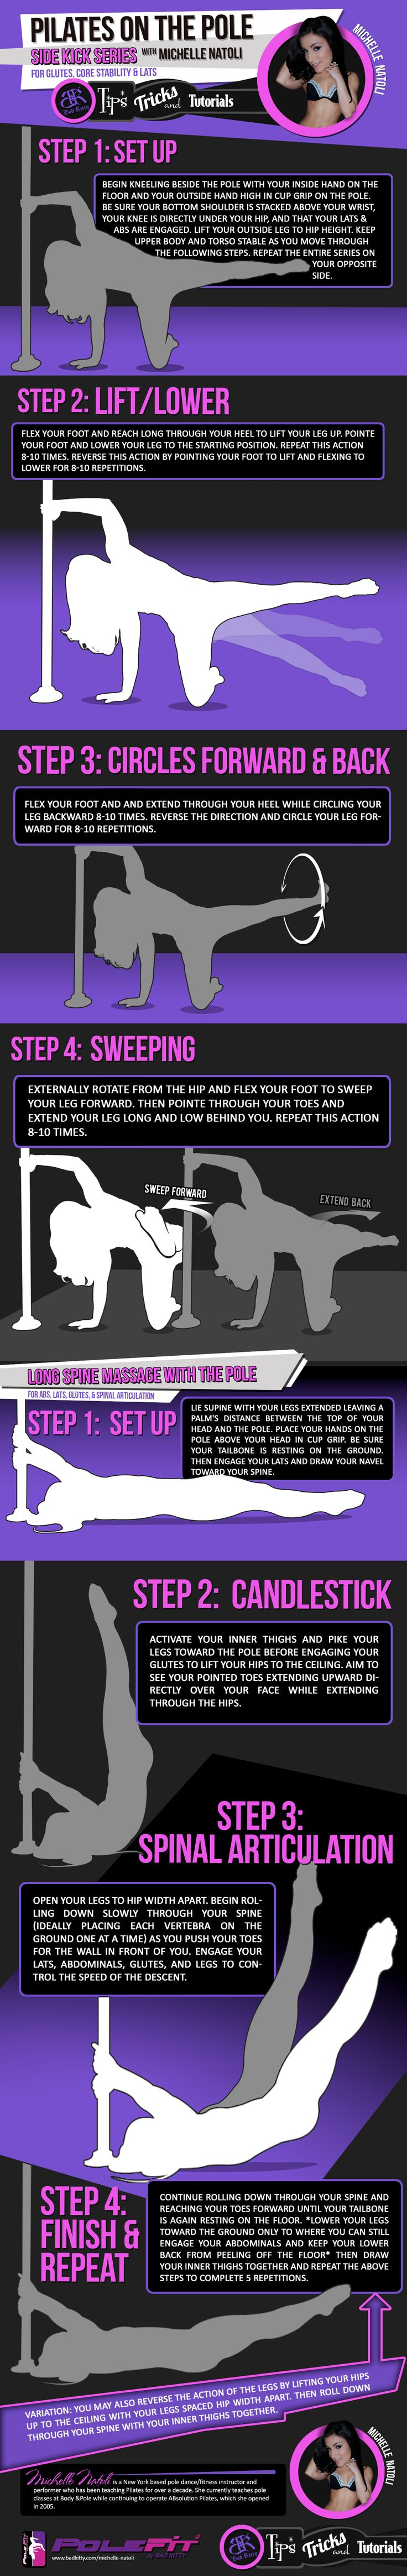 PoleFit® Tips & Tricks Pilates on the Pole with Michelle